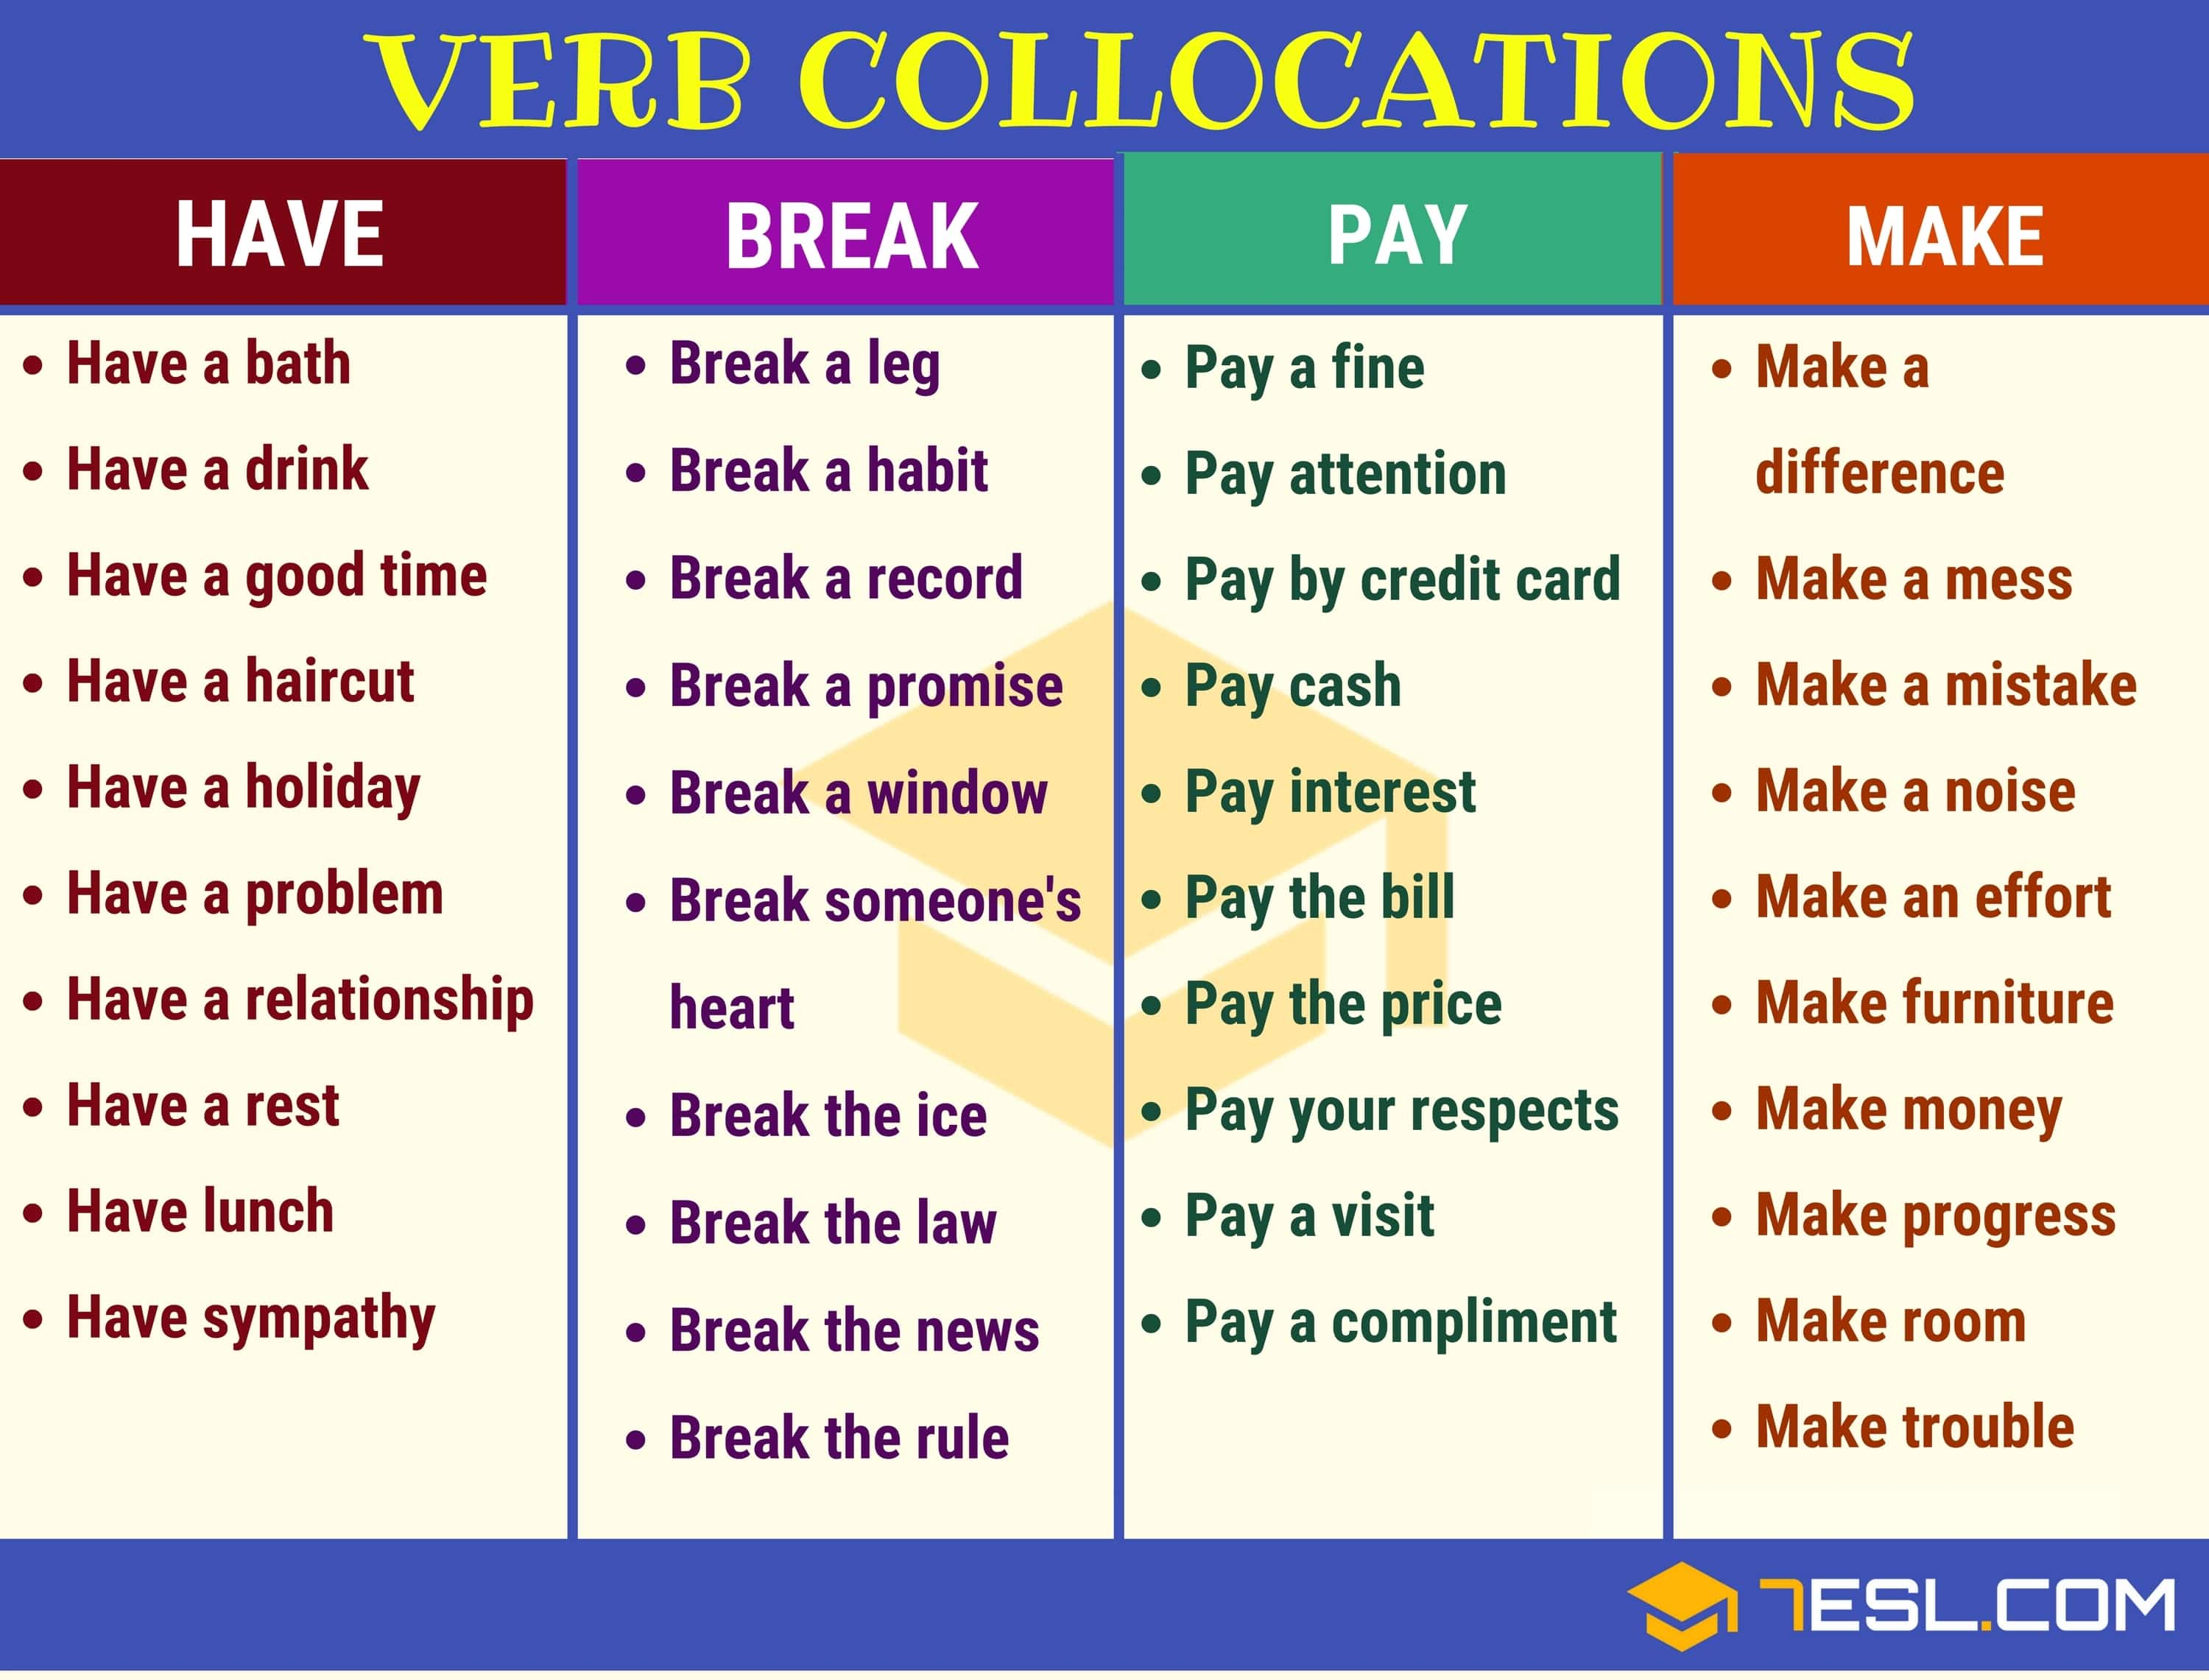 Verb Collocations: Examples of Collocations with Verb